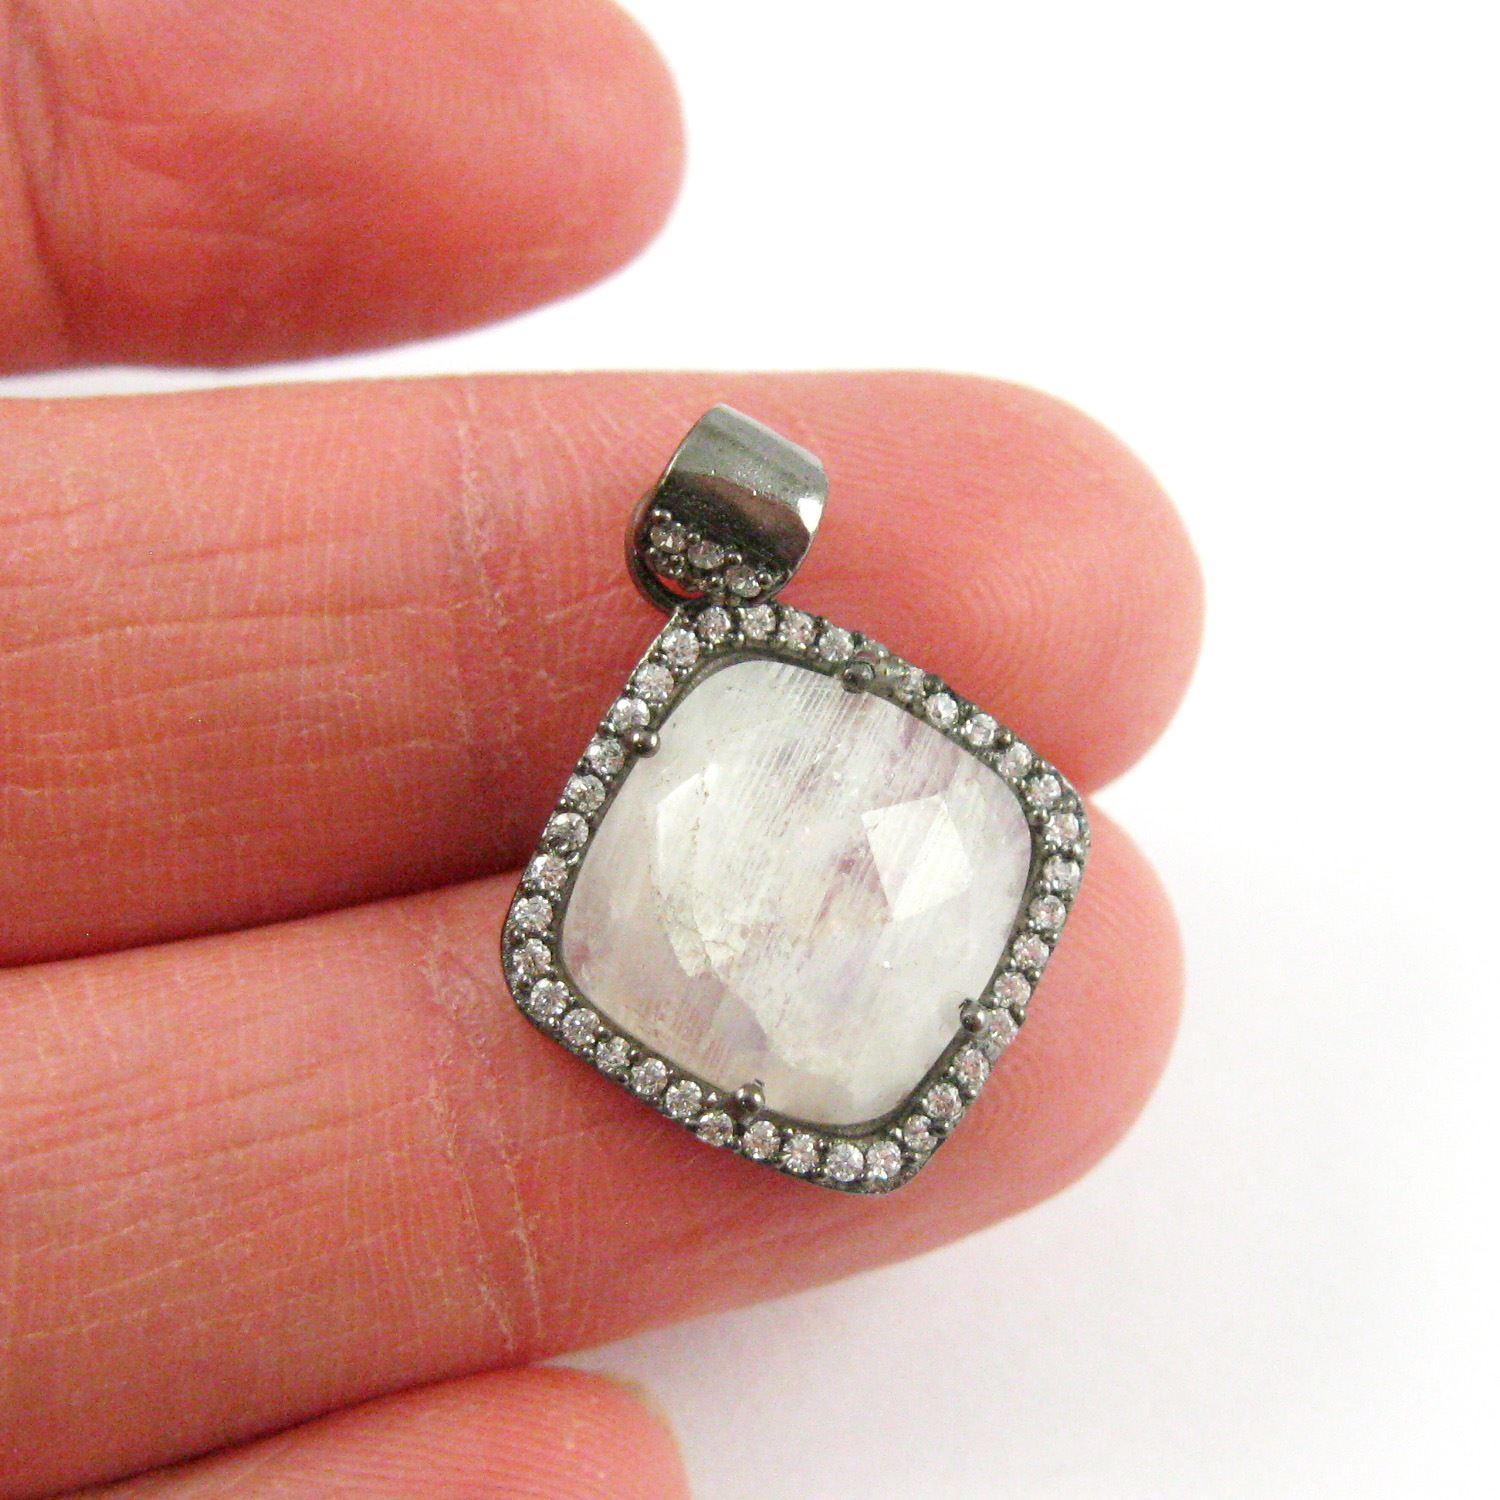 Oxidized Sterling Silver Pave Bezel Gemstone Pendant - Cubic Zirconia Pave Setting -  Diamond Shape Faceted Stone- Moonstone - 17mm